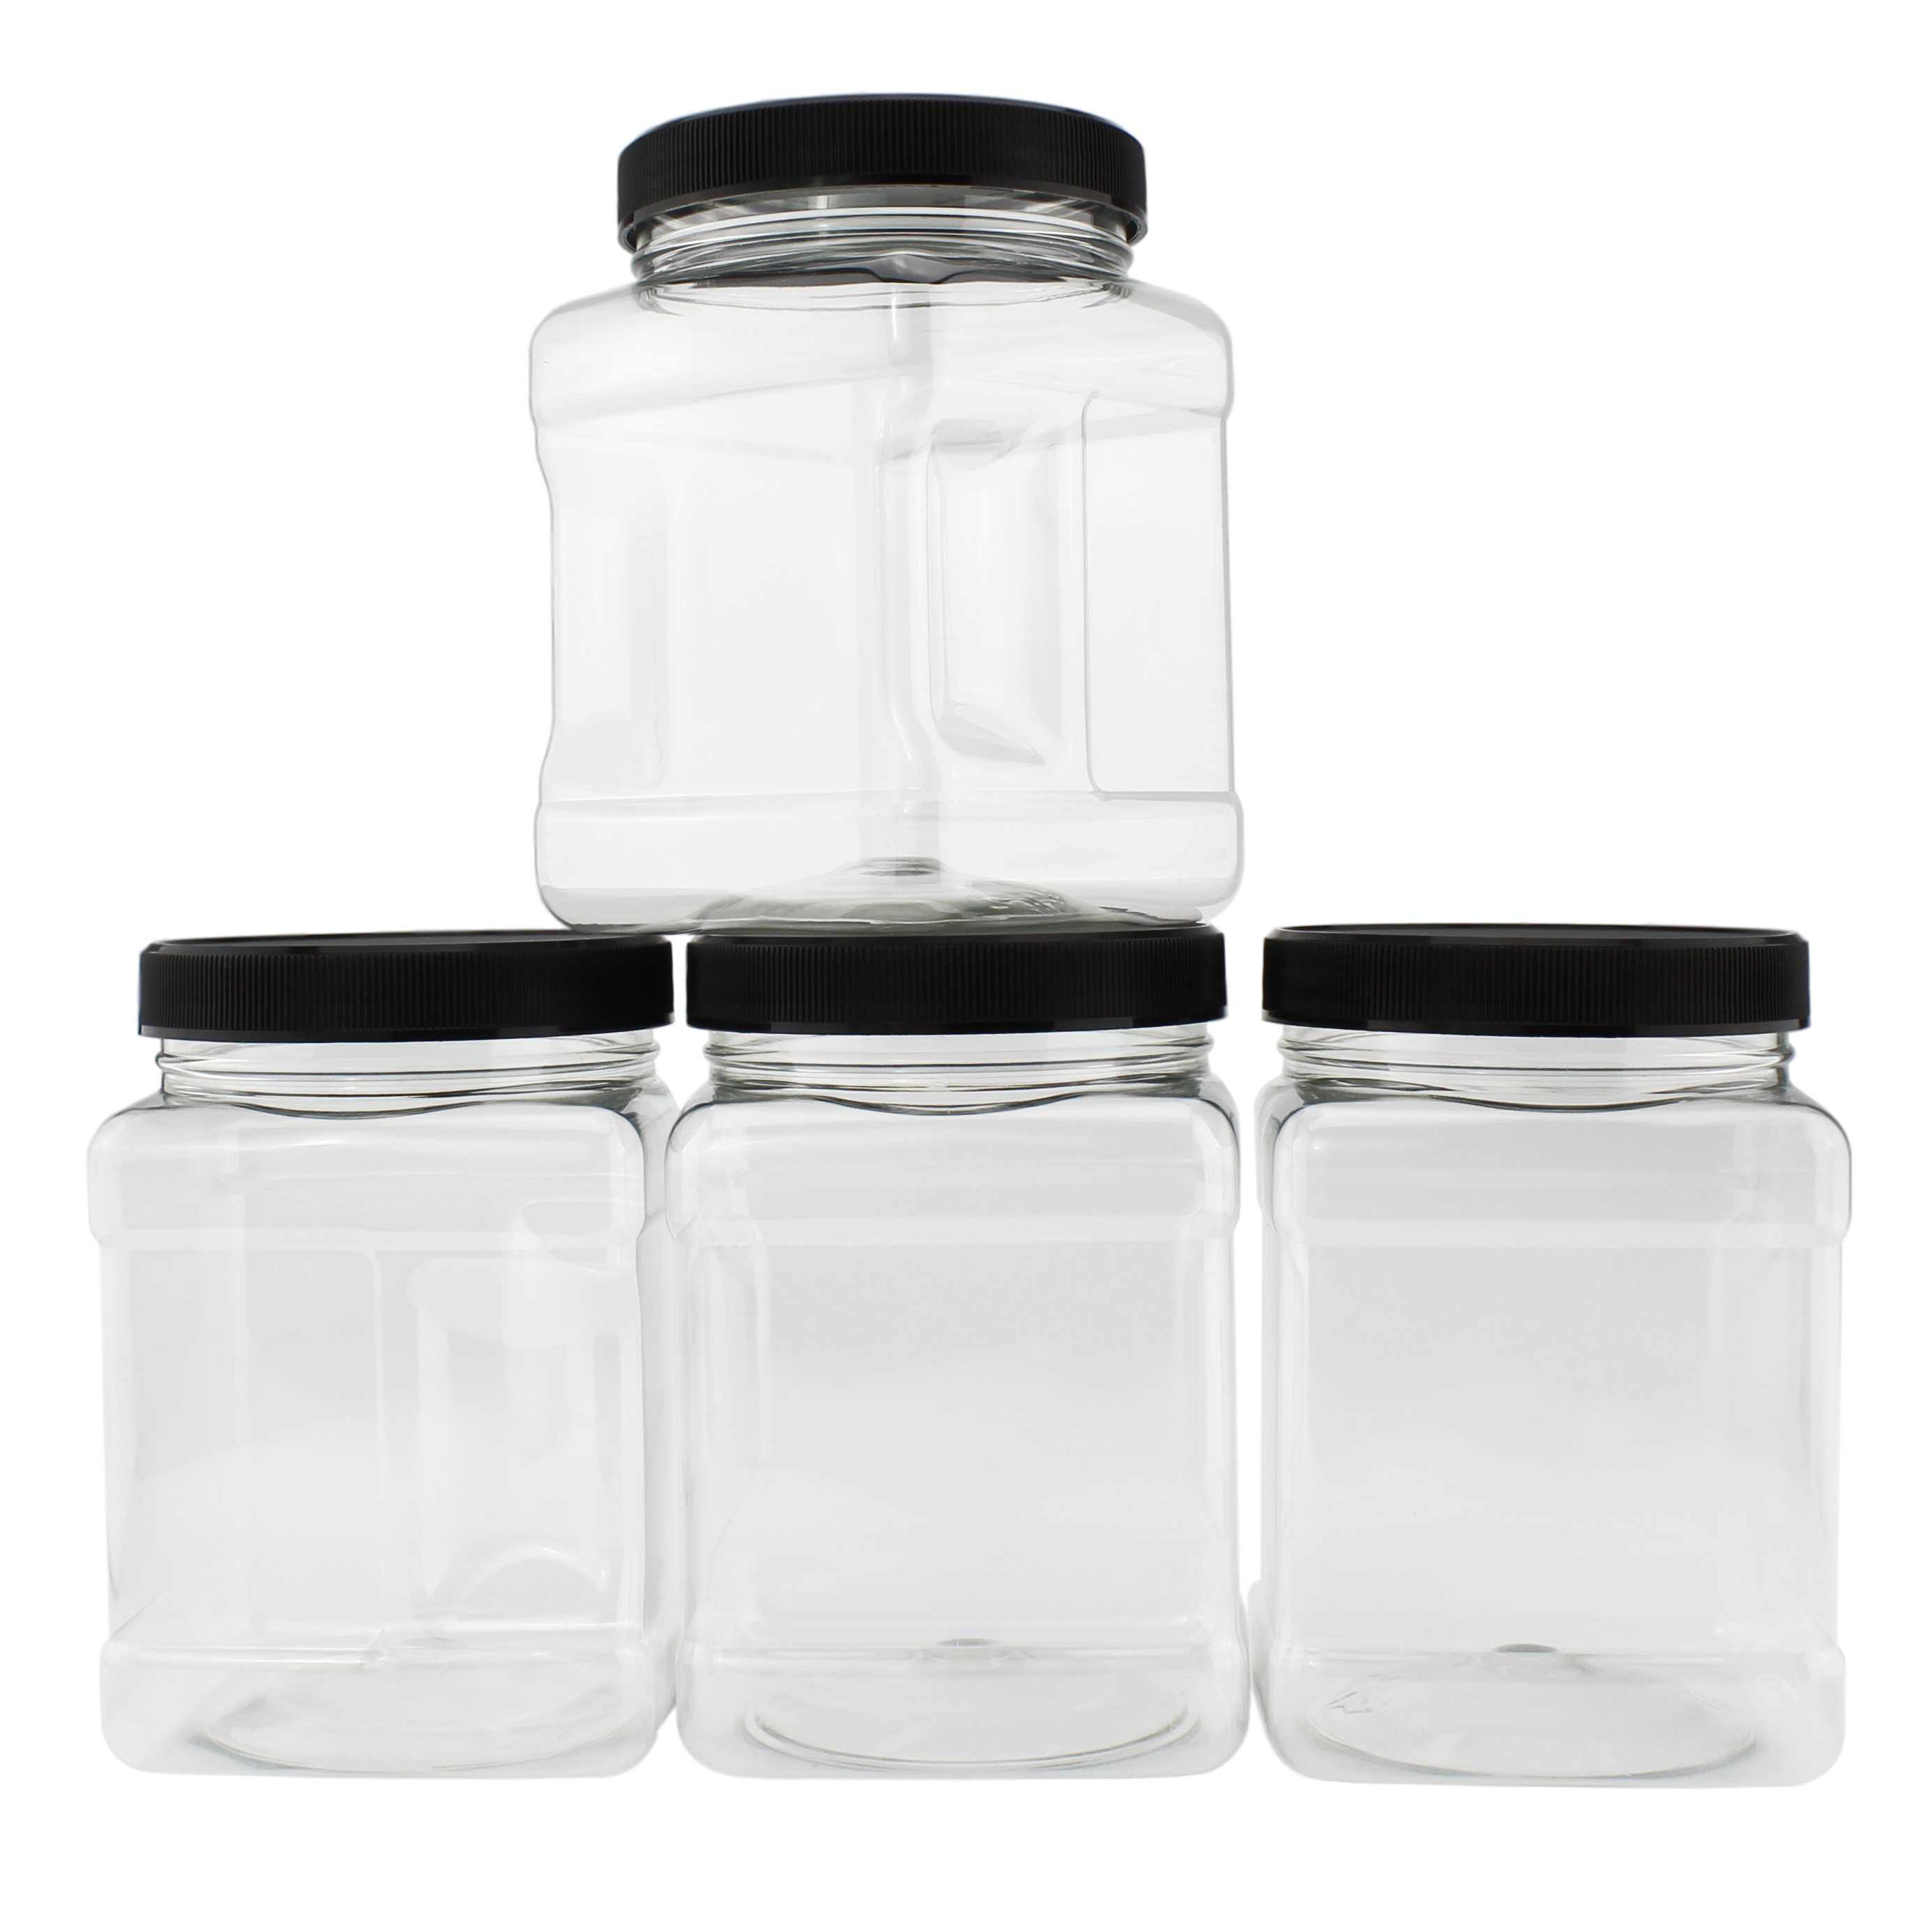 B078SF8L4D - 32-Ounce Square Plastic Jars (4-Pack) 2